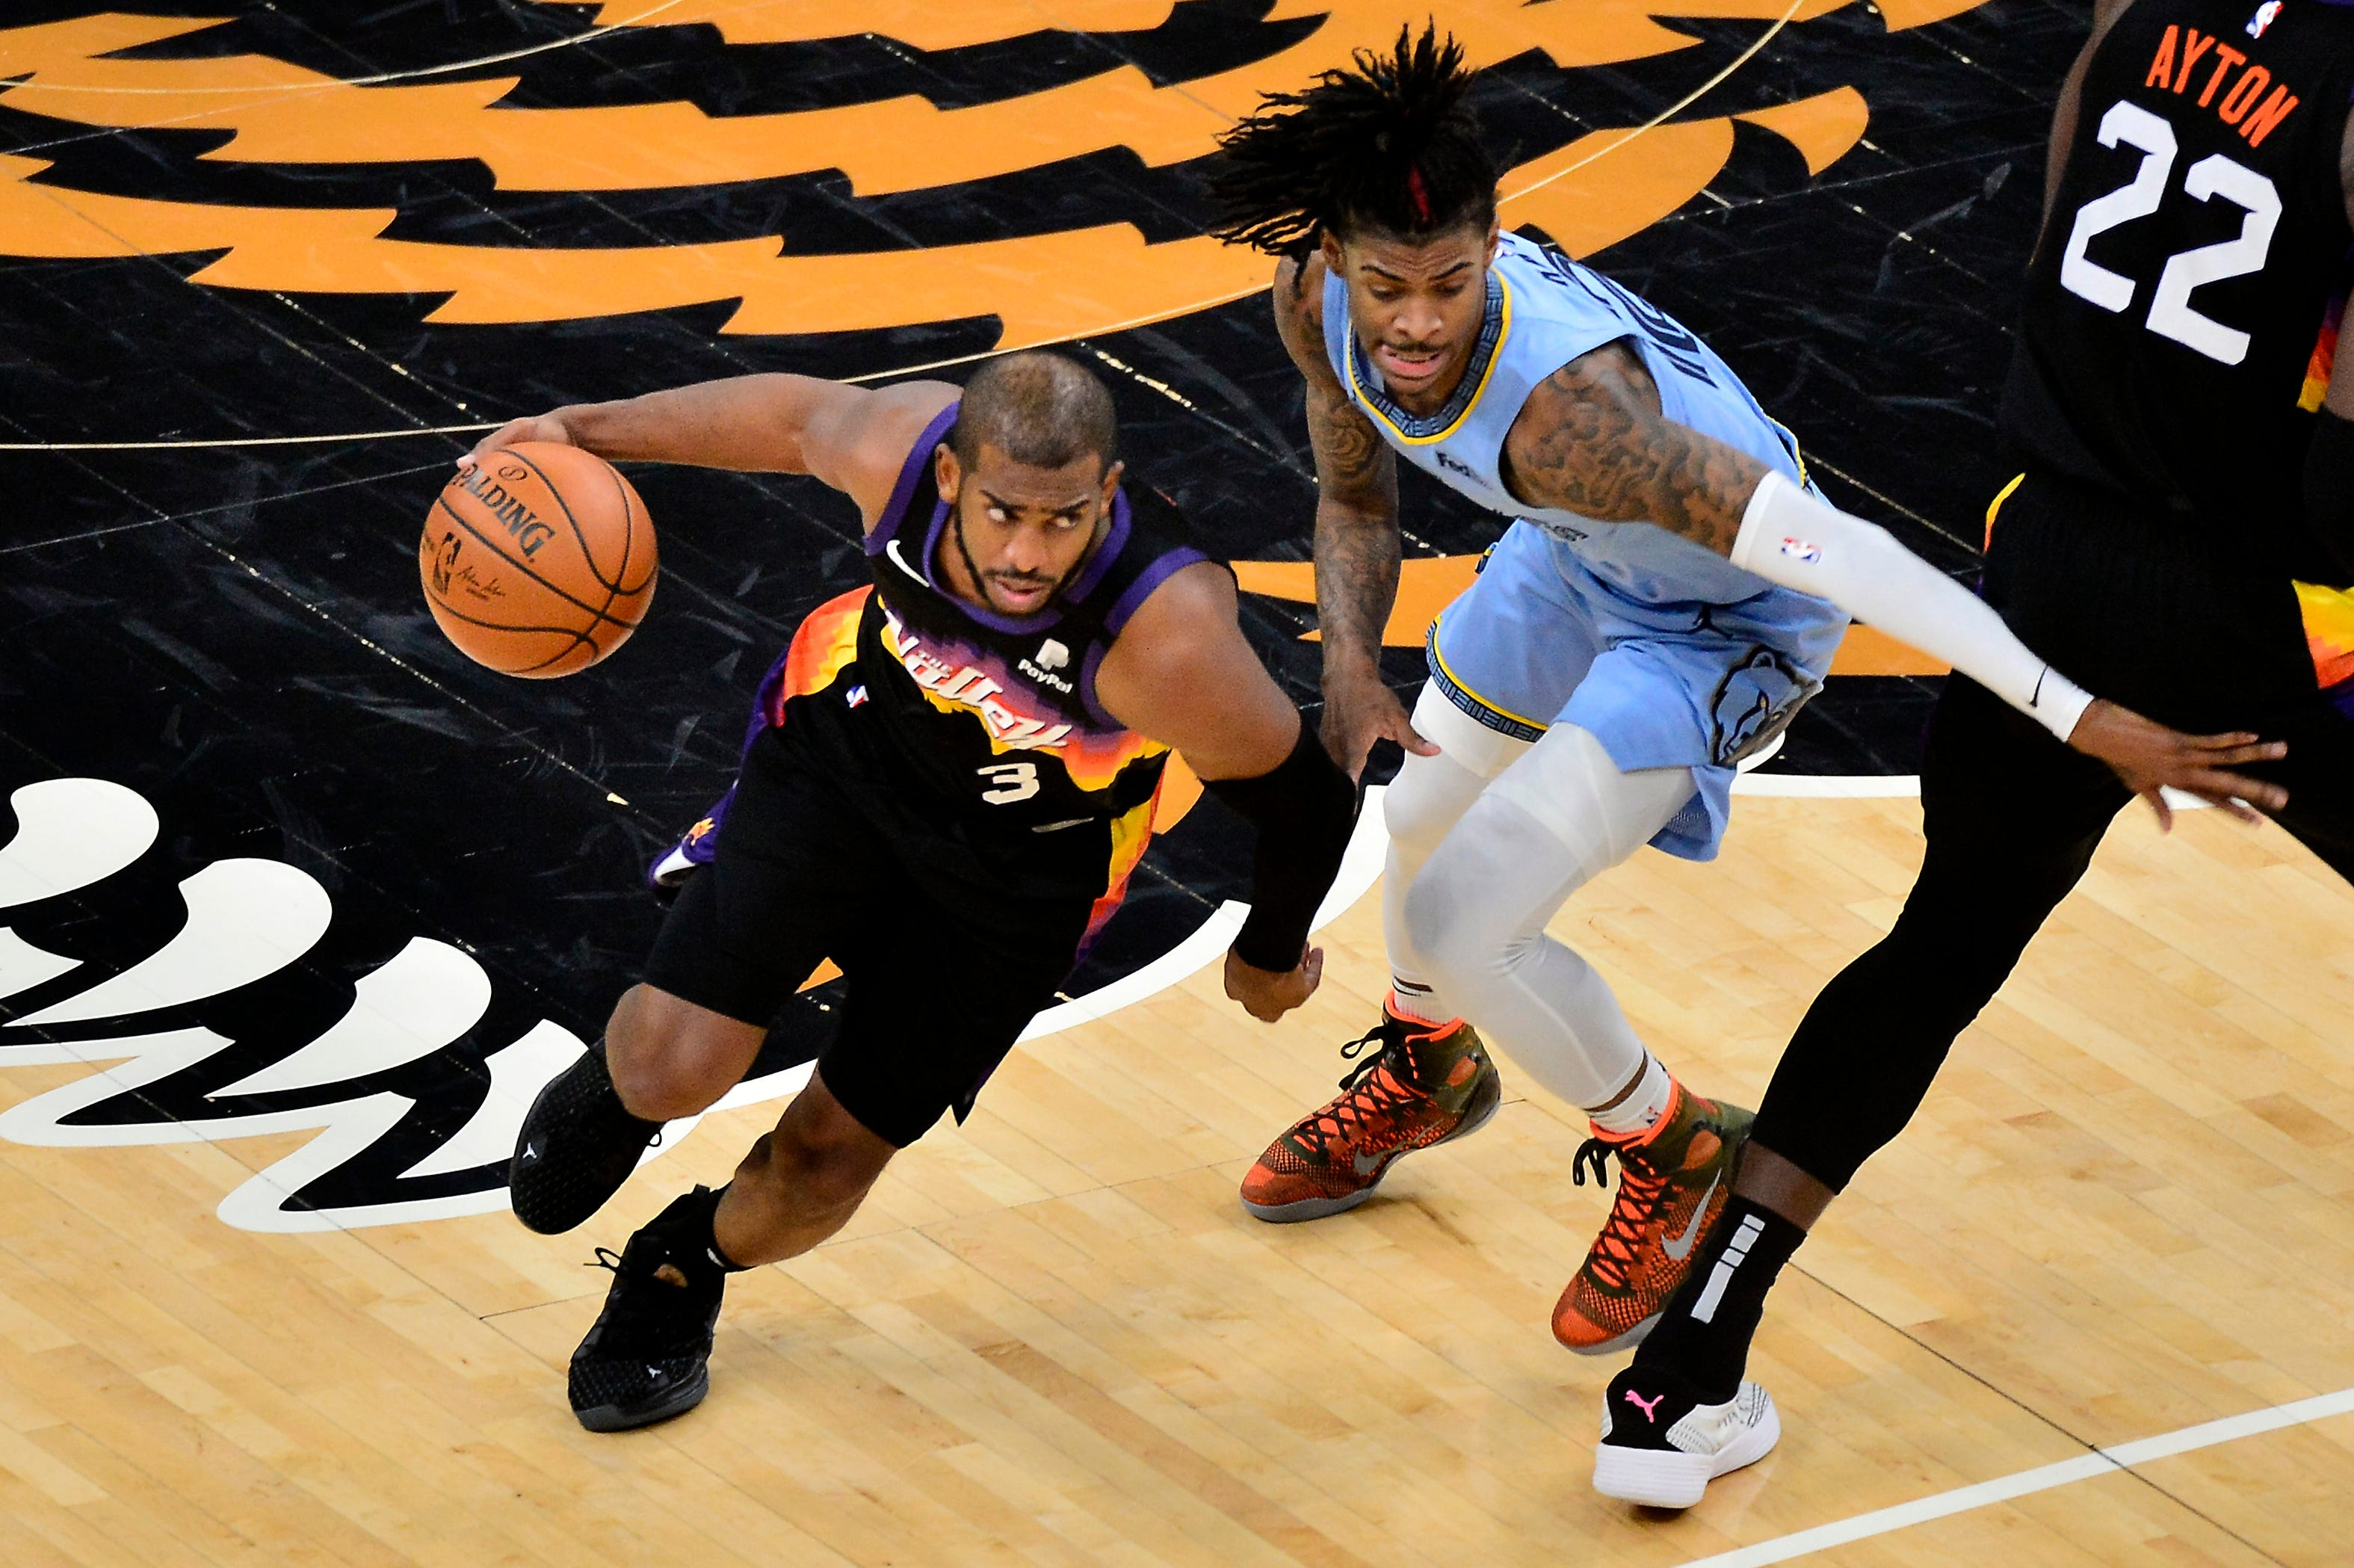 Suns complete road back-to-back revenge tour with blasting of Grizzlies